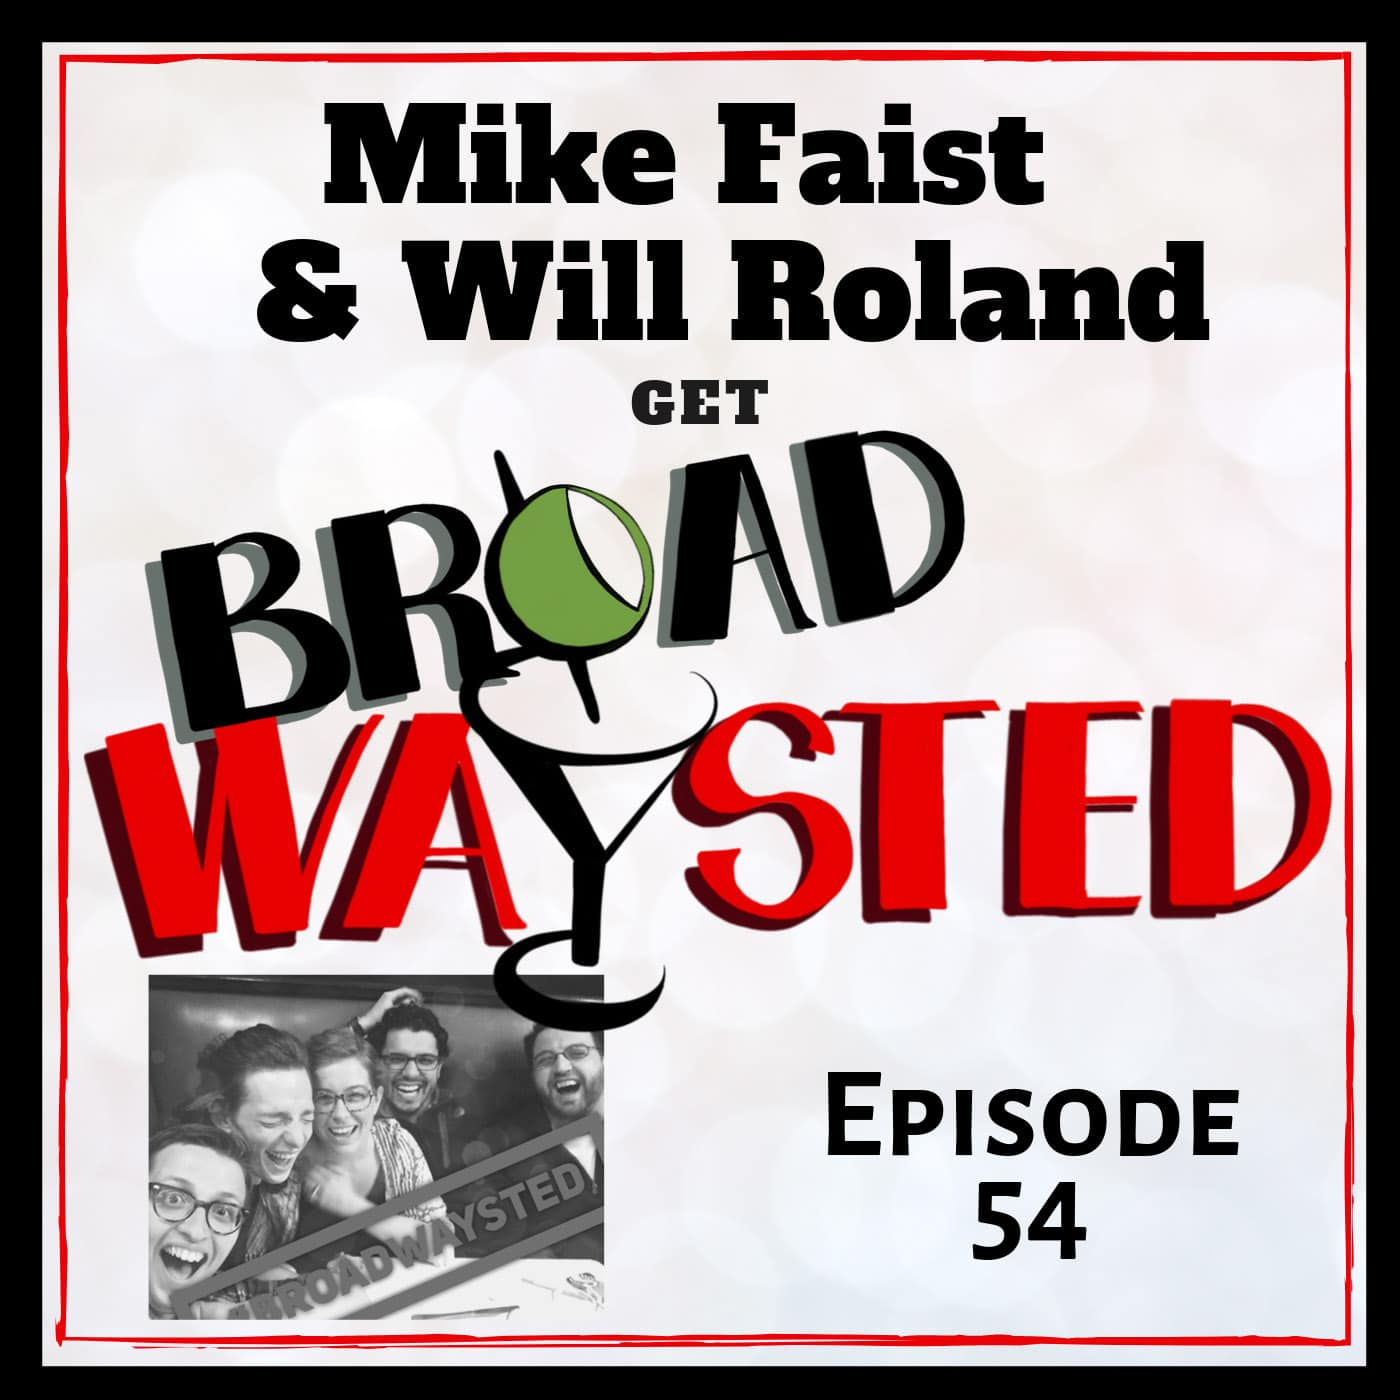 Broadwaysted Ep 54 Faist and Roland